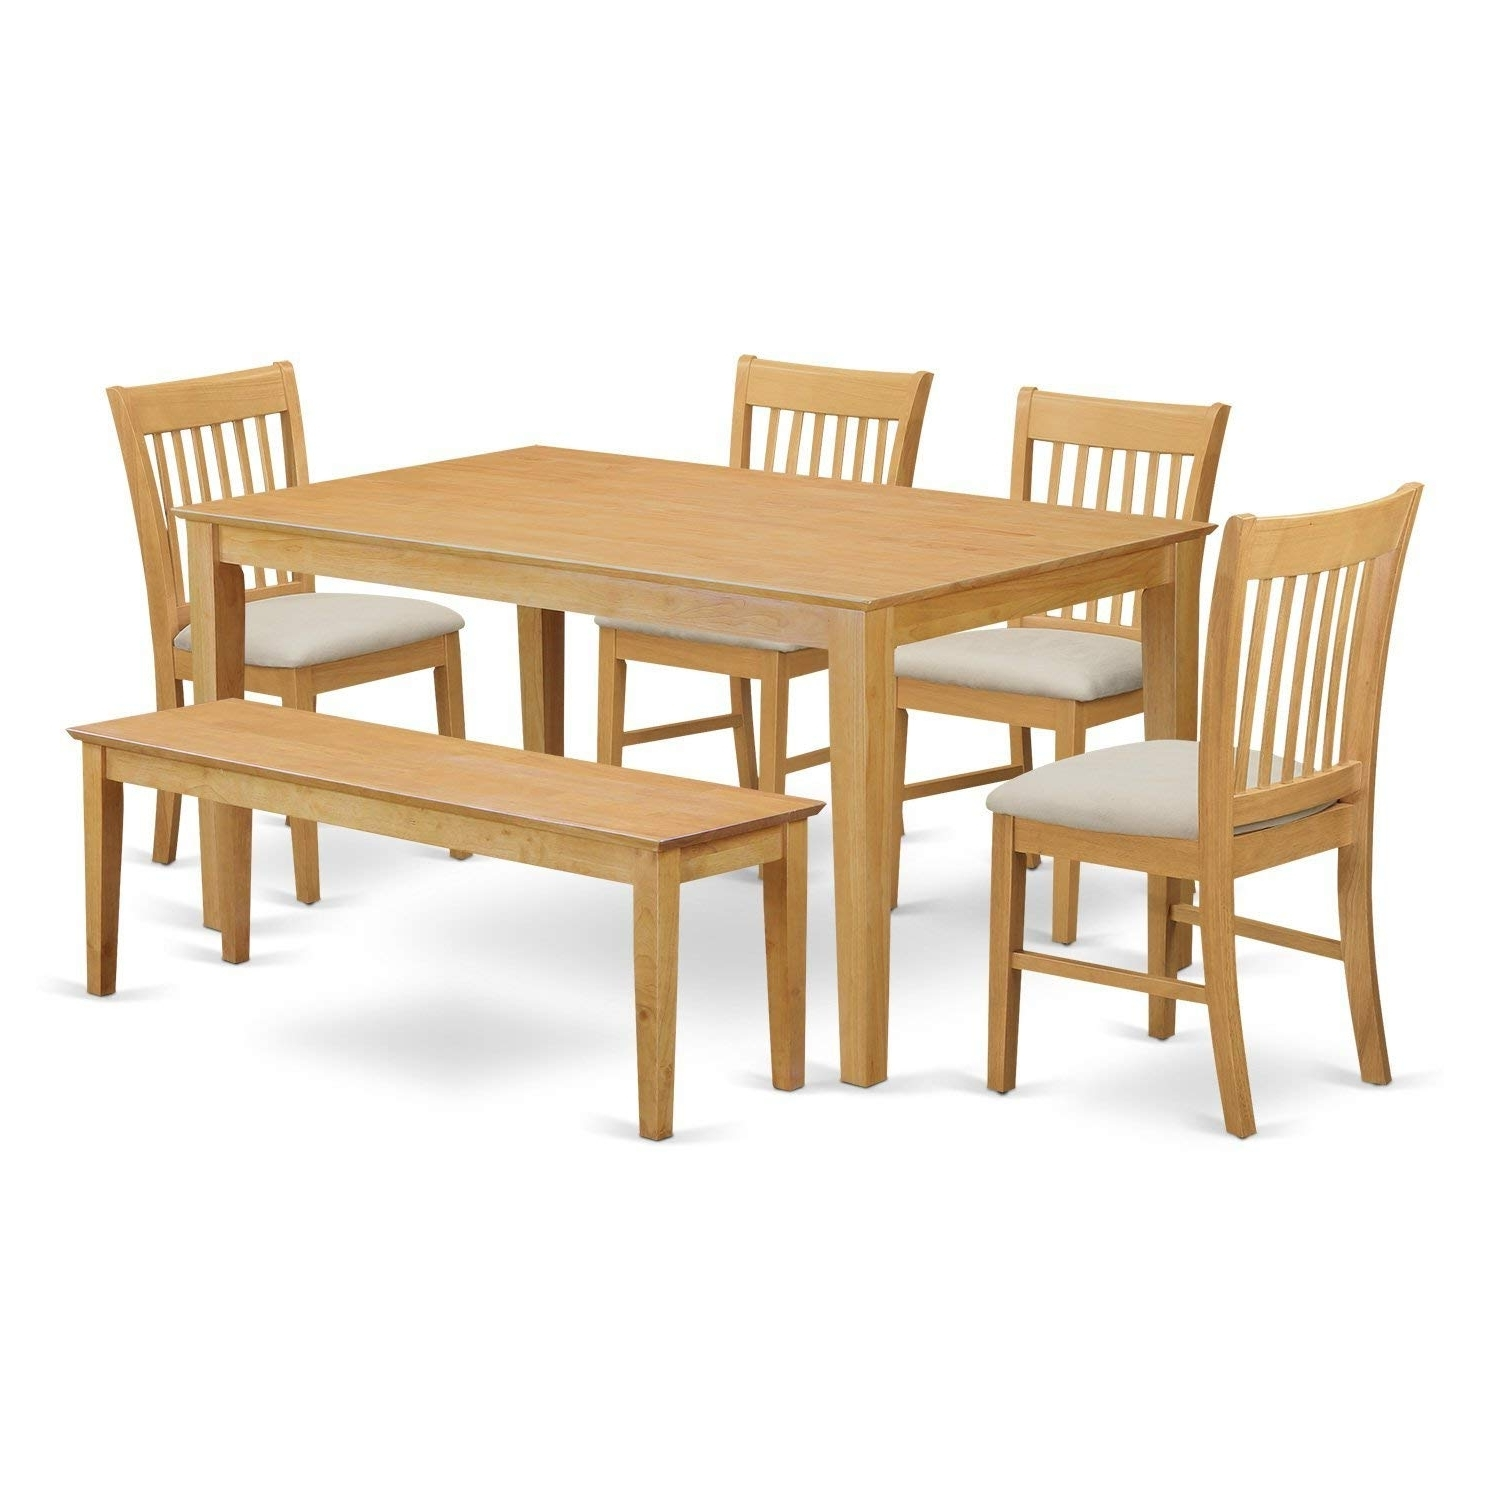 Fashionable Craftsman 5 Piece Round Dining Sets With Side Chairs Intended For Amazon: East West Furniture Cano6 Oak W 6 Piece Dining Table Set (View 11 of 25)